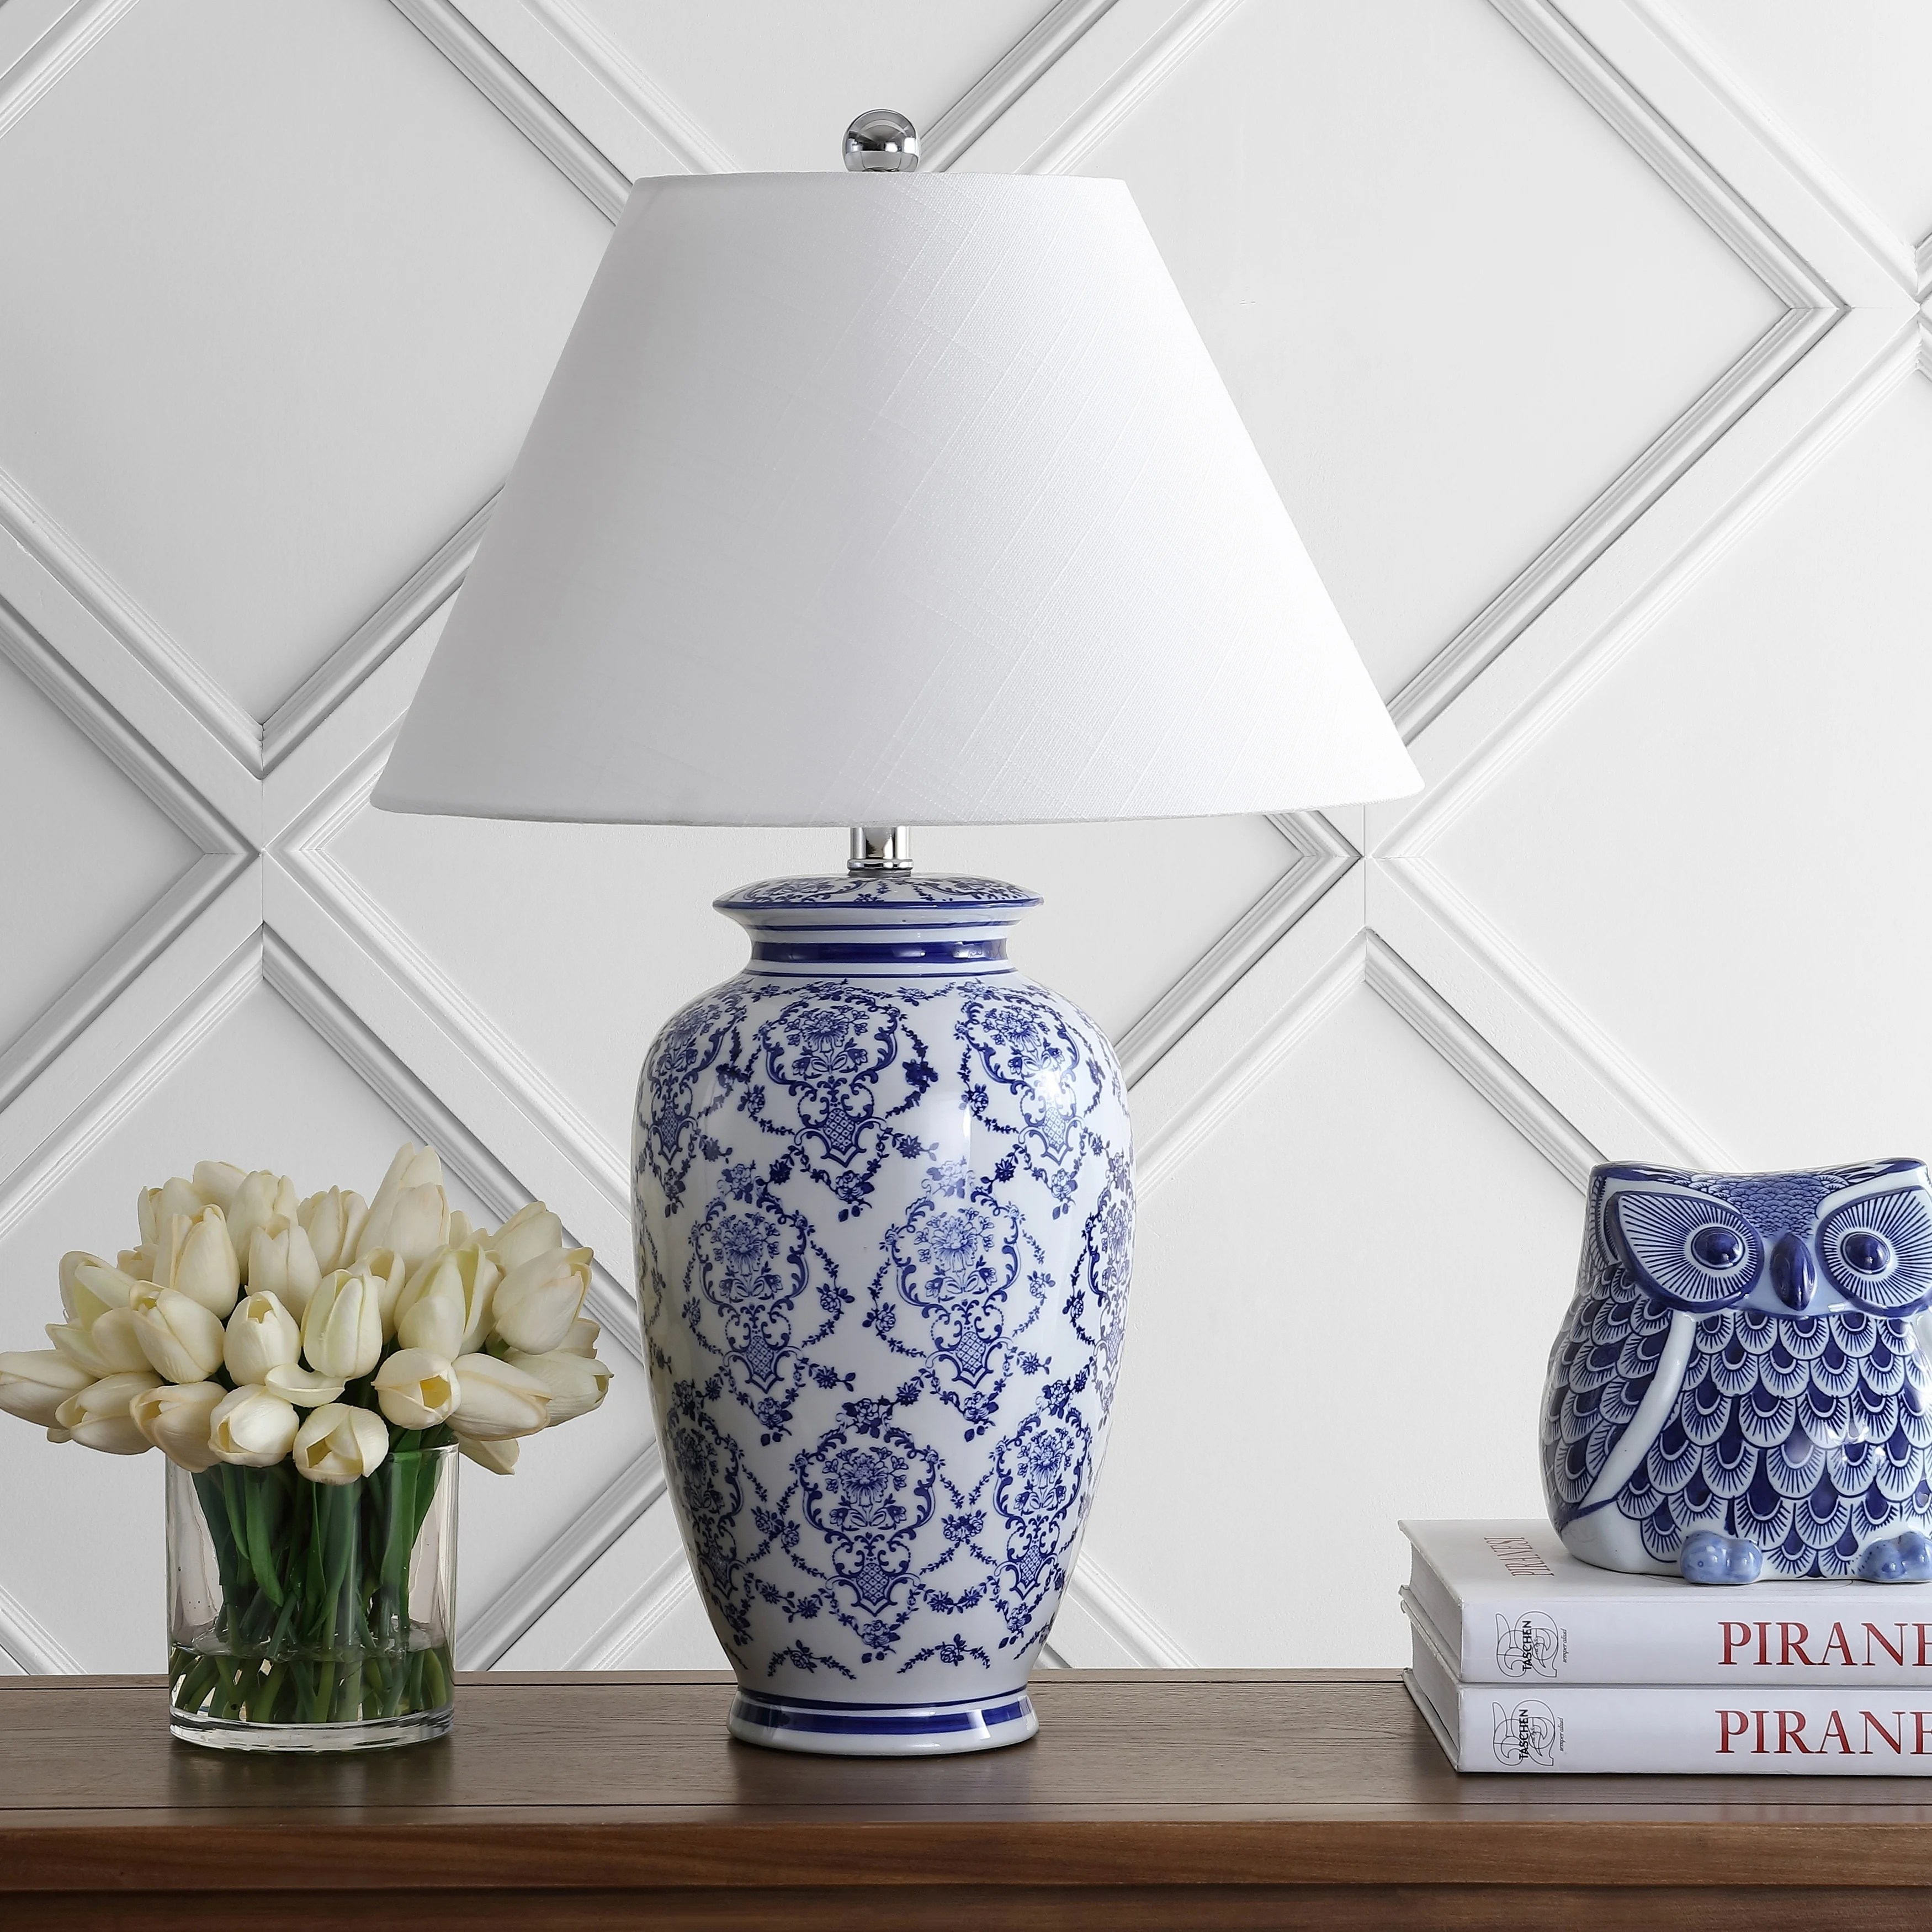 Juliana 26 25 Chinoiserie Ceramic Led Table Lamp Blue White By Jonathan Y Overstock 25741194